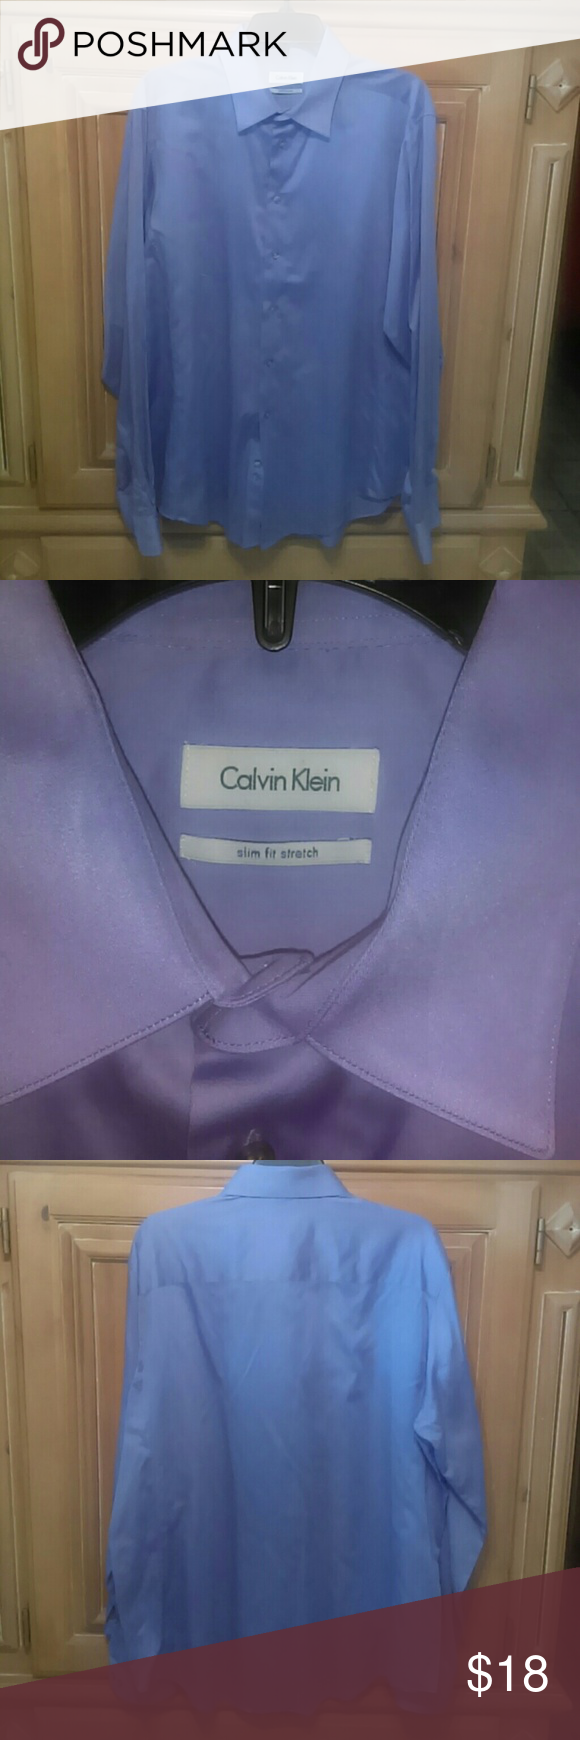 Calvin Klein shirt Pre-owned Calvin Klein. Slim fit stretch button up shirt Calvin Klein Shirts Dress Shirts